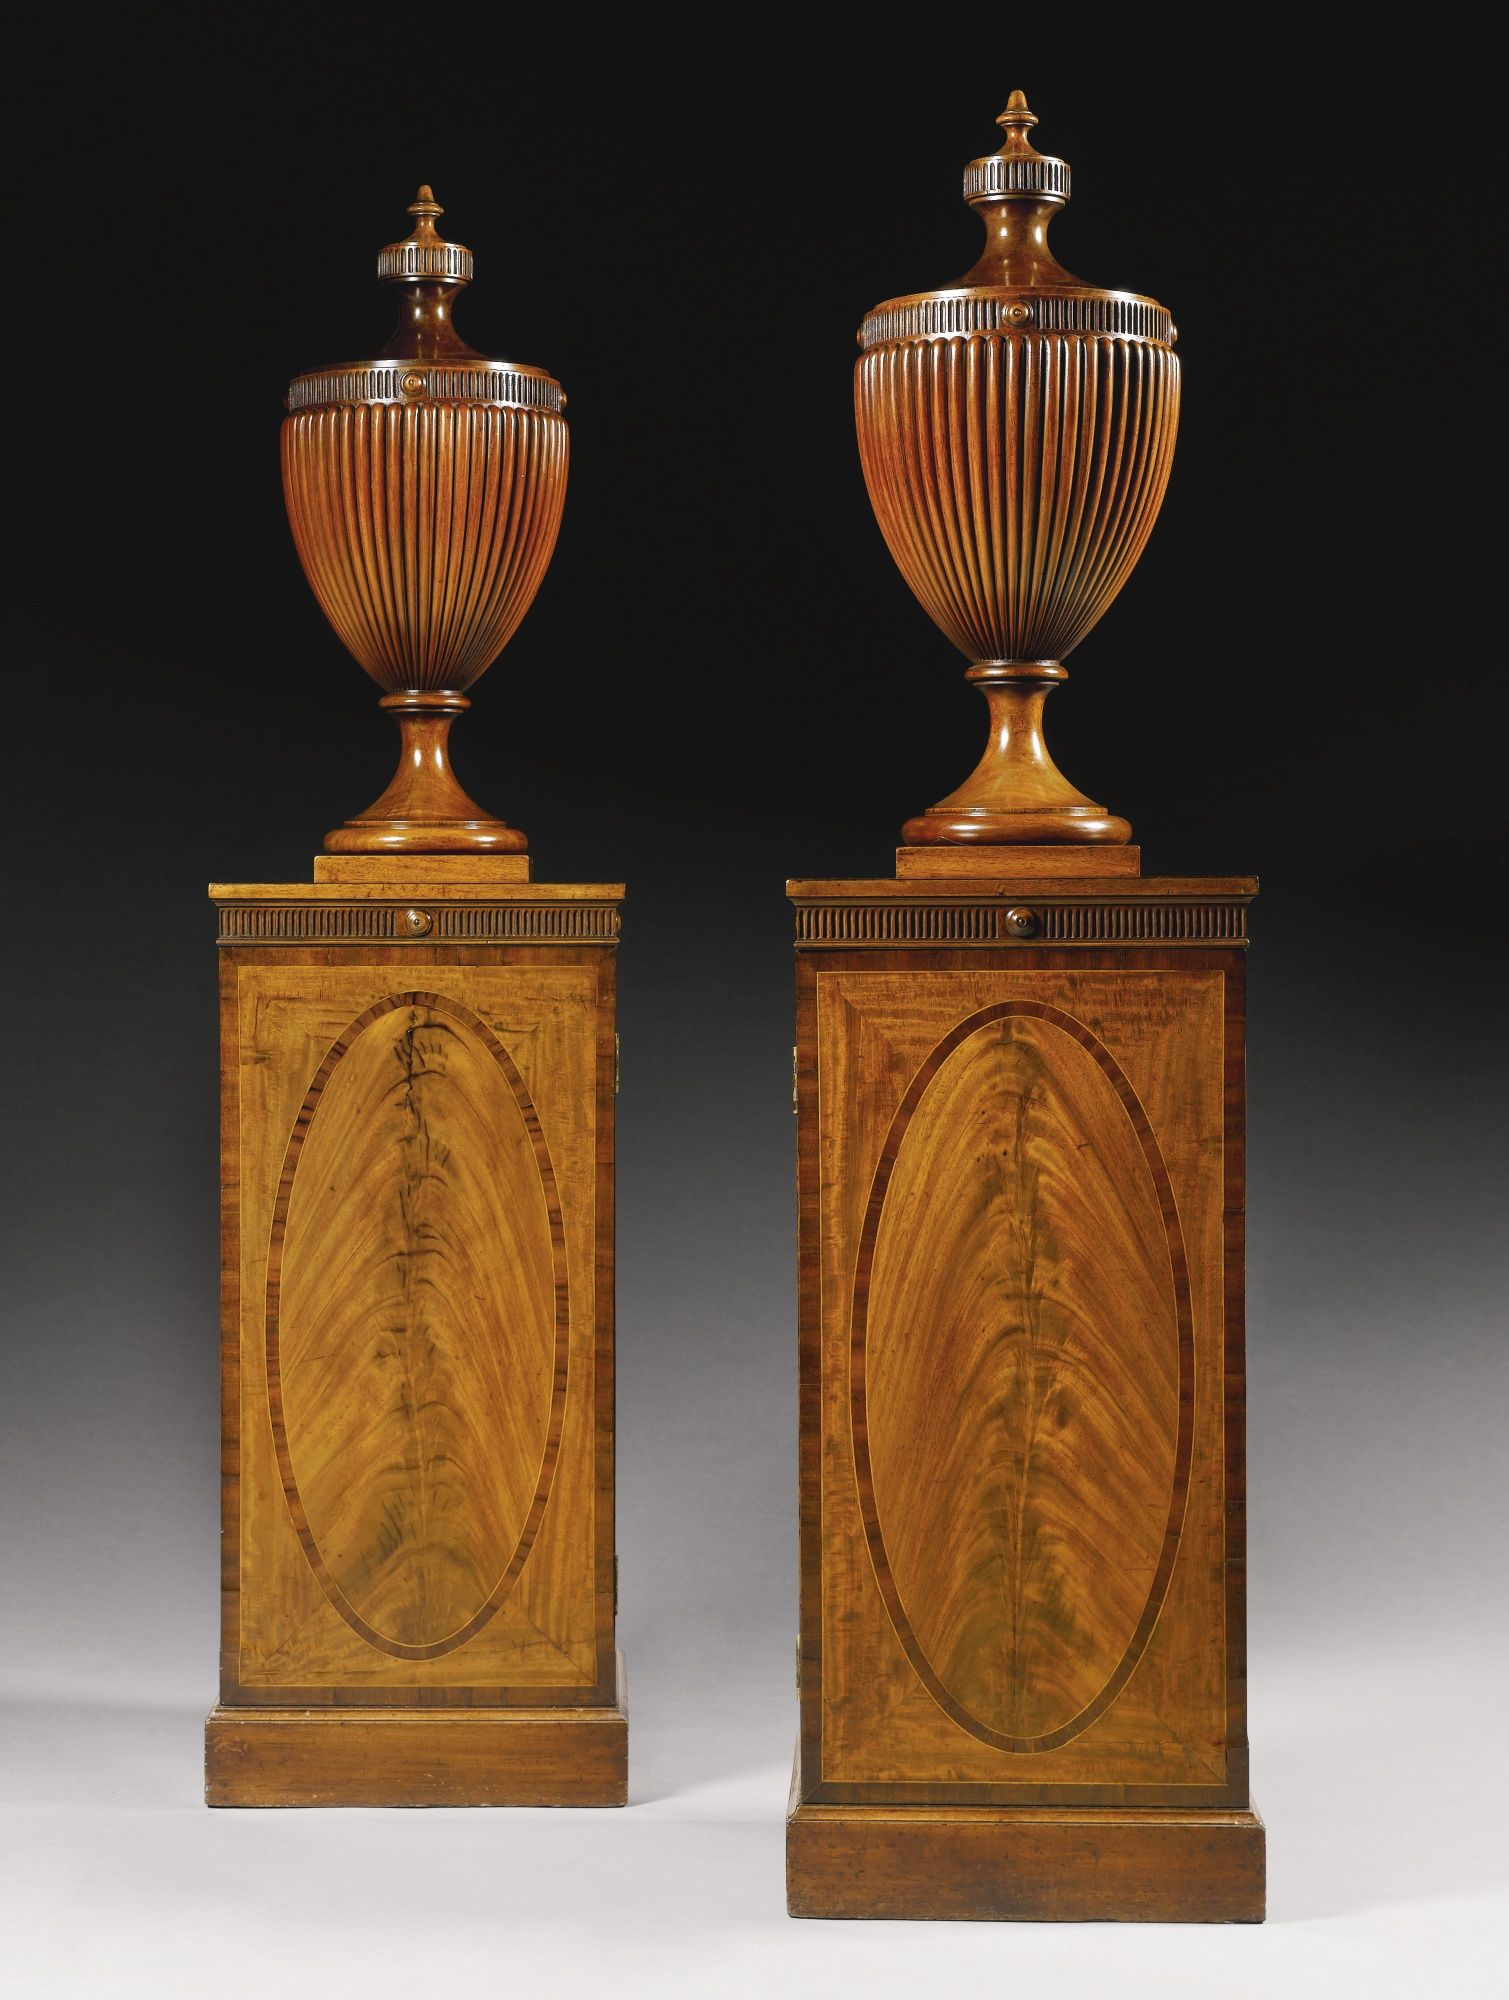 A Pair Of Late 18th Century English Neoclassical Urns On